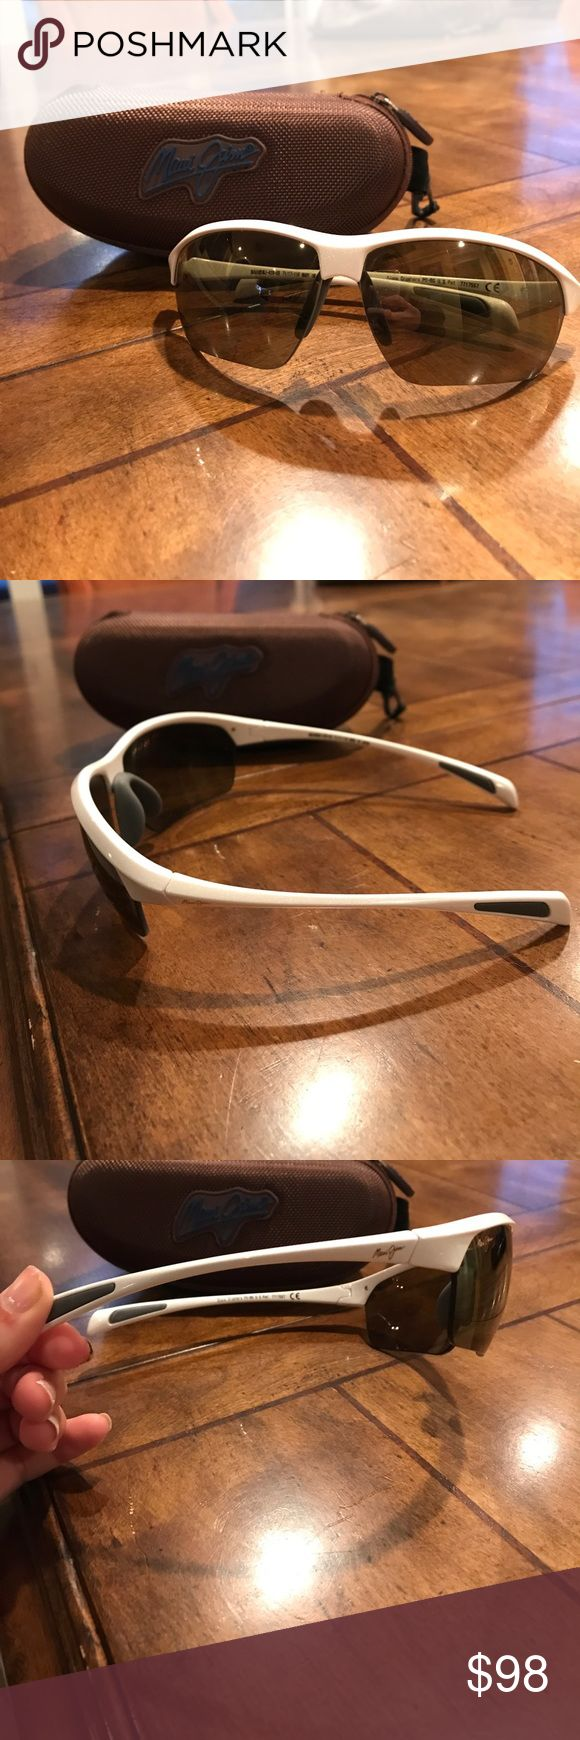 Maui Jim Stone Crusher white sport Sunglasses Hardly touched Maui Jim sunglasses. They retail for 199! Very similar style to Oakleys with no visible signs of scratching or marks on the glasses. They come with a case and cloth to clean them with. Super durable and perfect for summer! Maui Jim Accessories Sunglasses